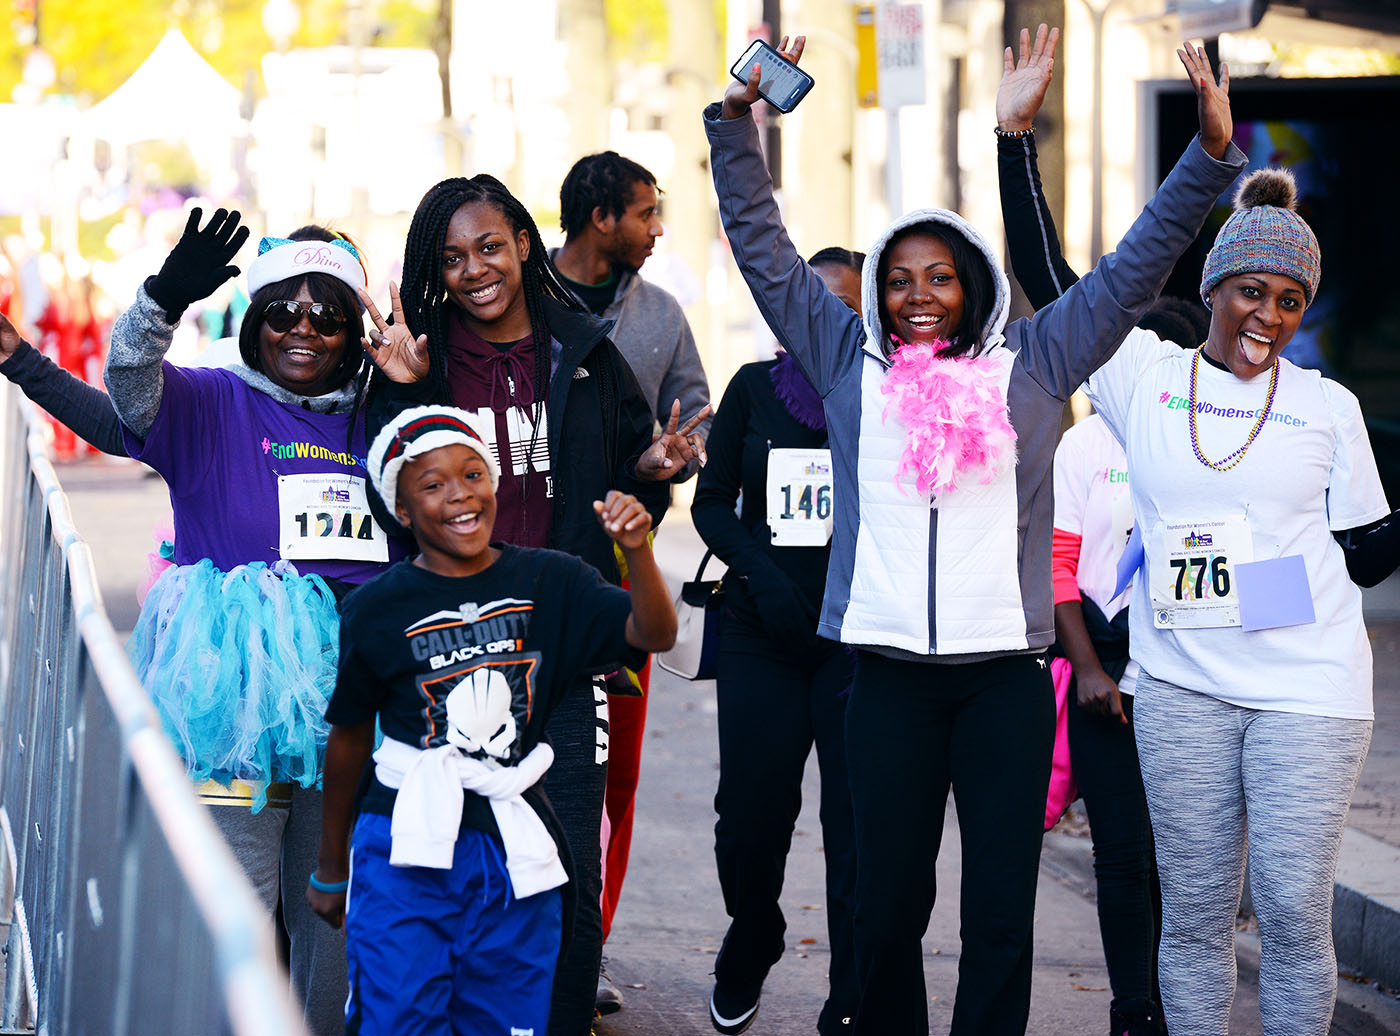 FWC Race Family Excited Gyn Cancer Survivor Advocacy